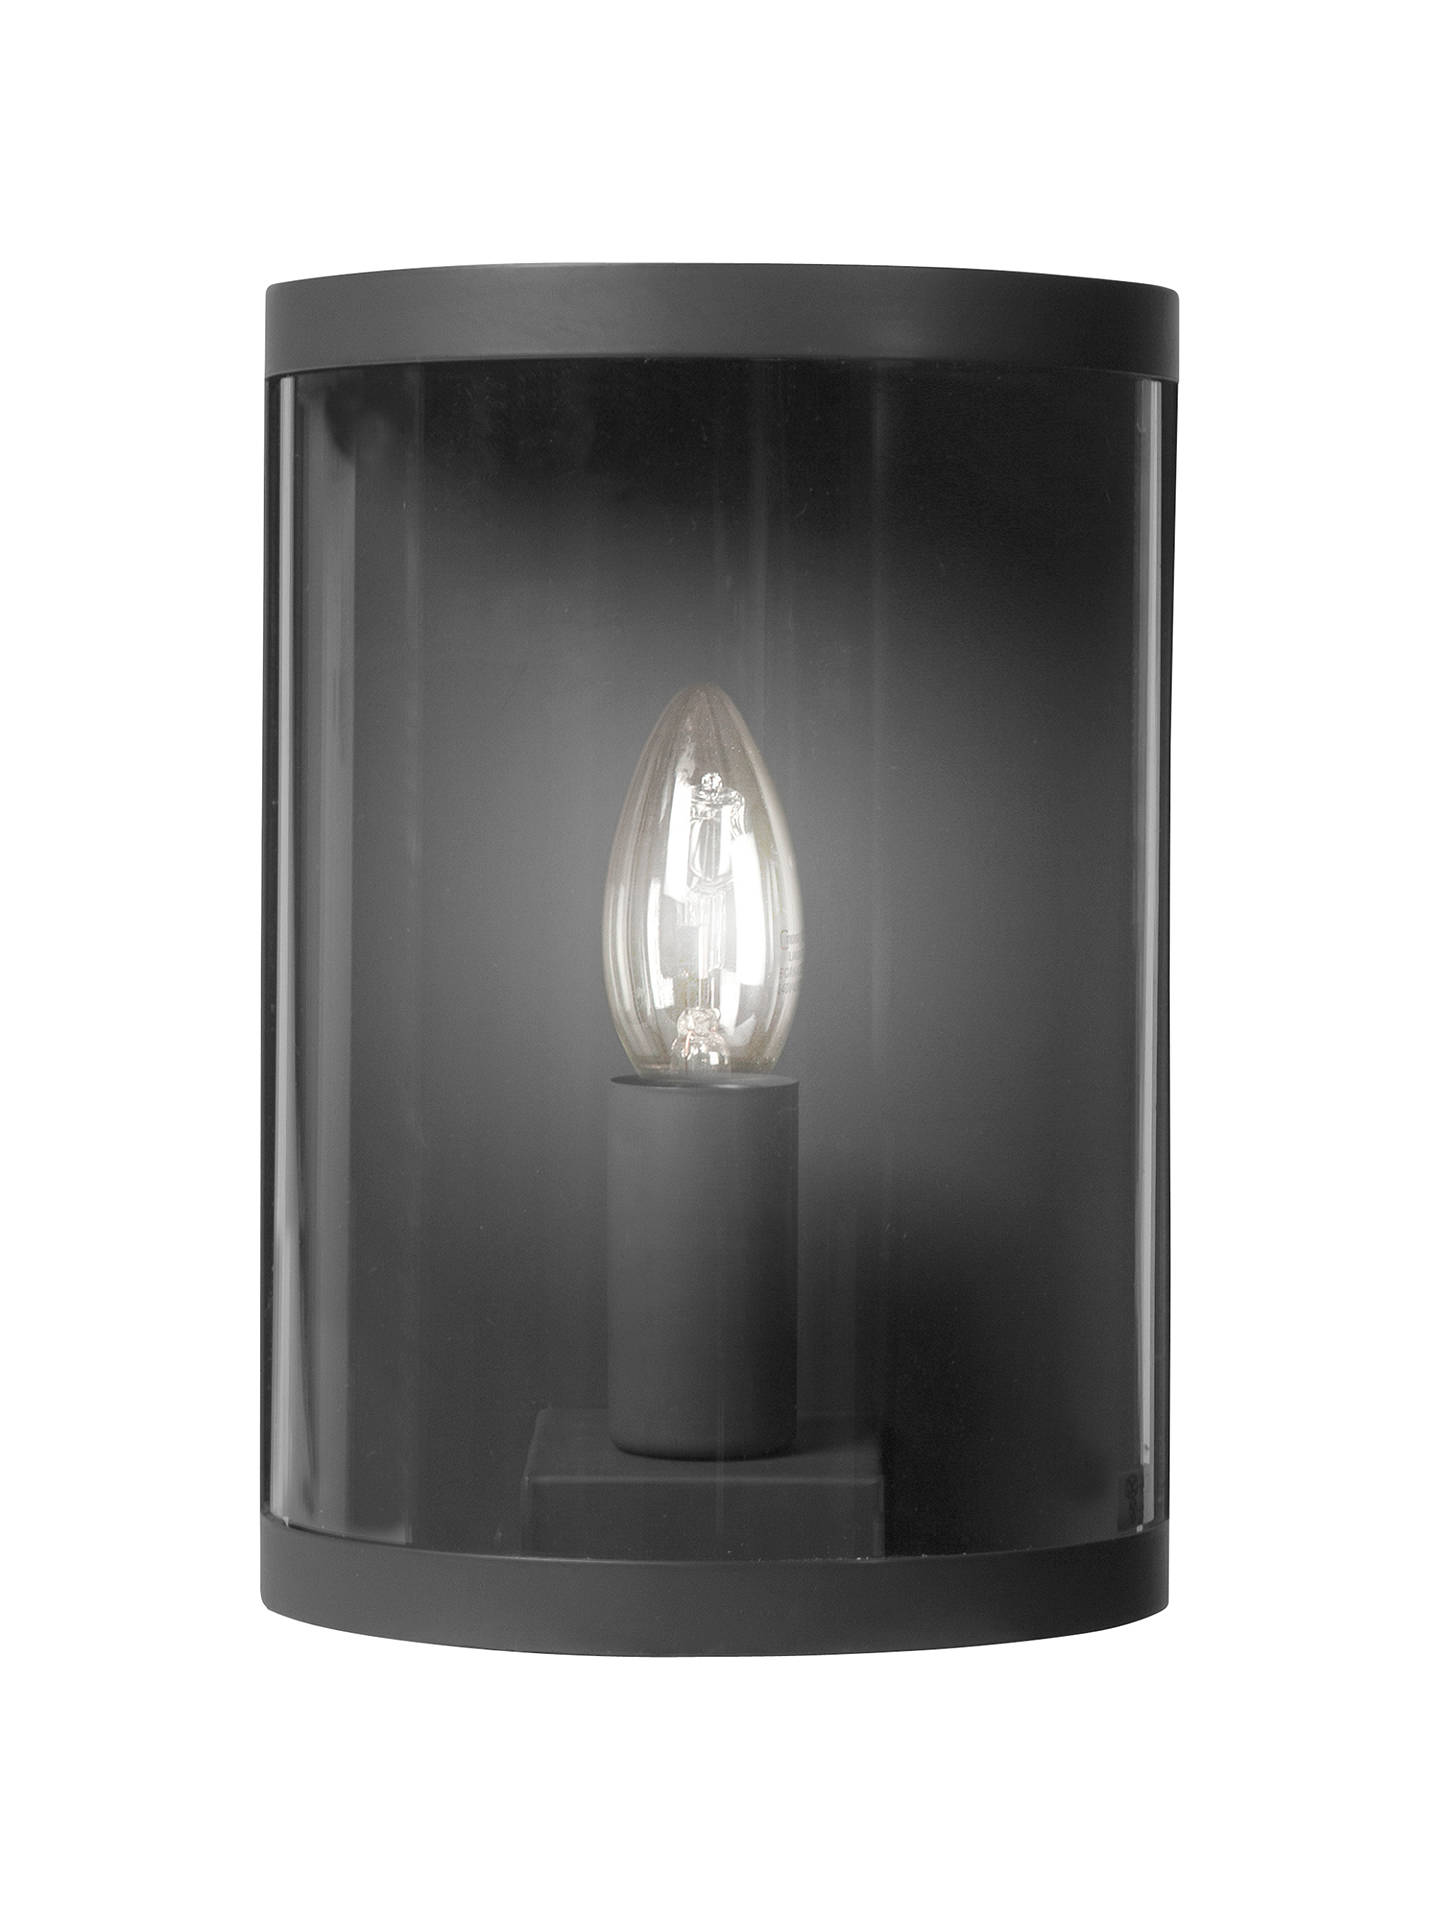 garden trading company astall wall light charcoal at john. Black Bedroom Furniture Sets. Home Design Ideas